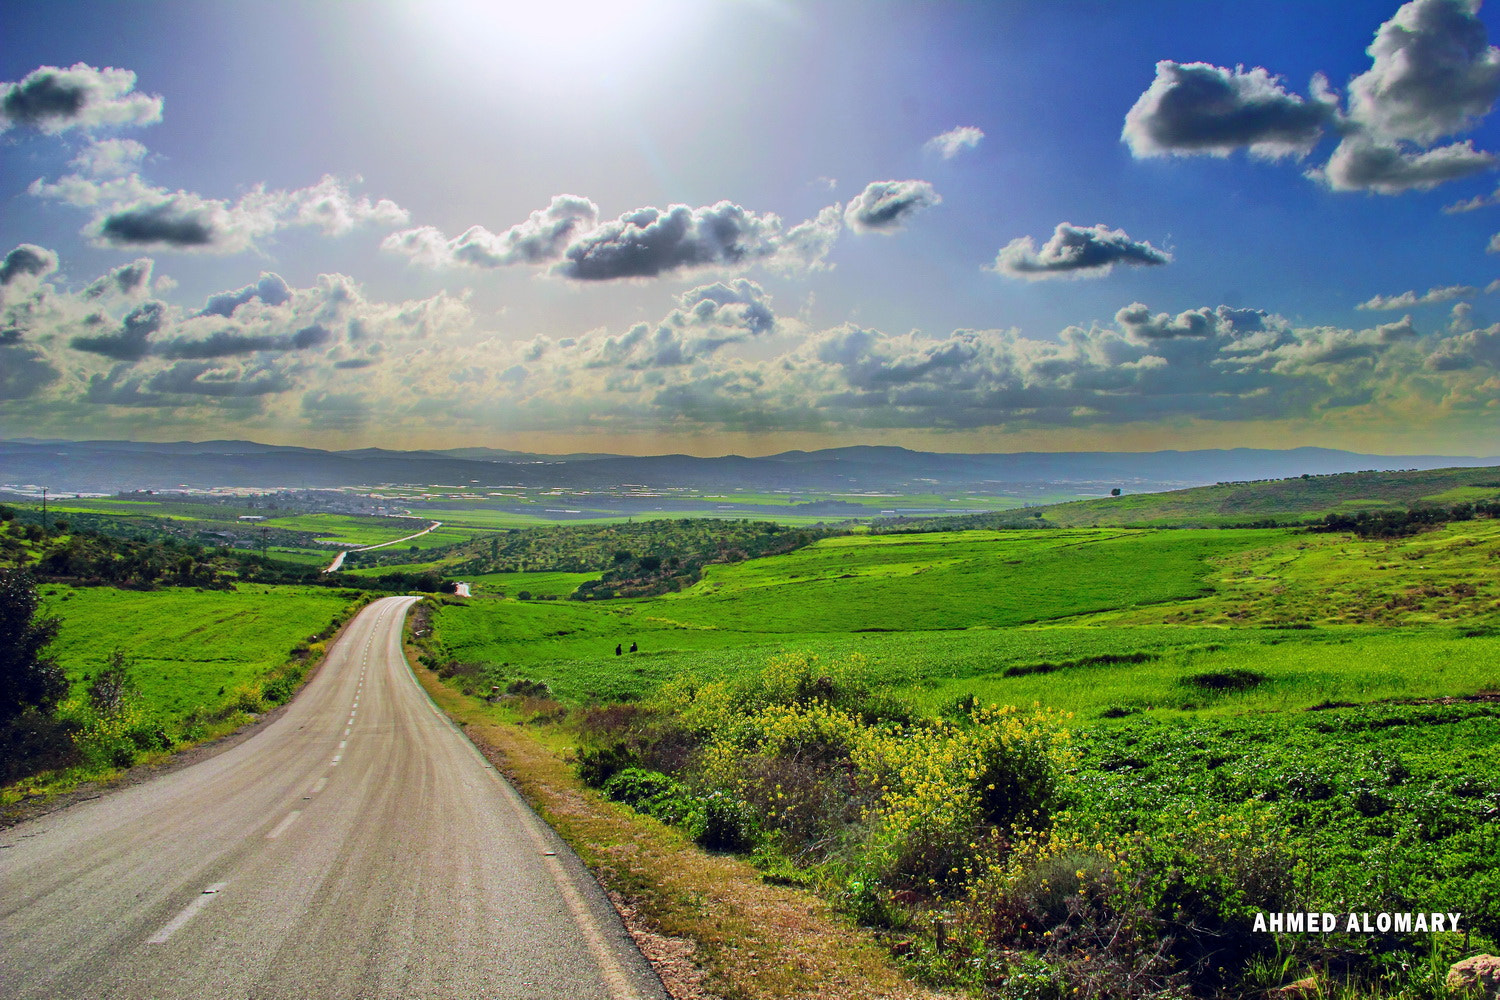 Photograph To Palestine the holy land by Ahmed Alomary on 500px